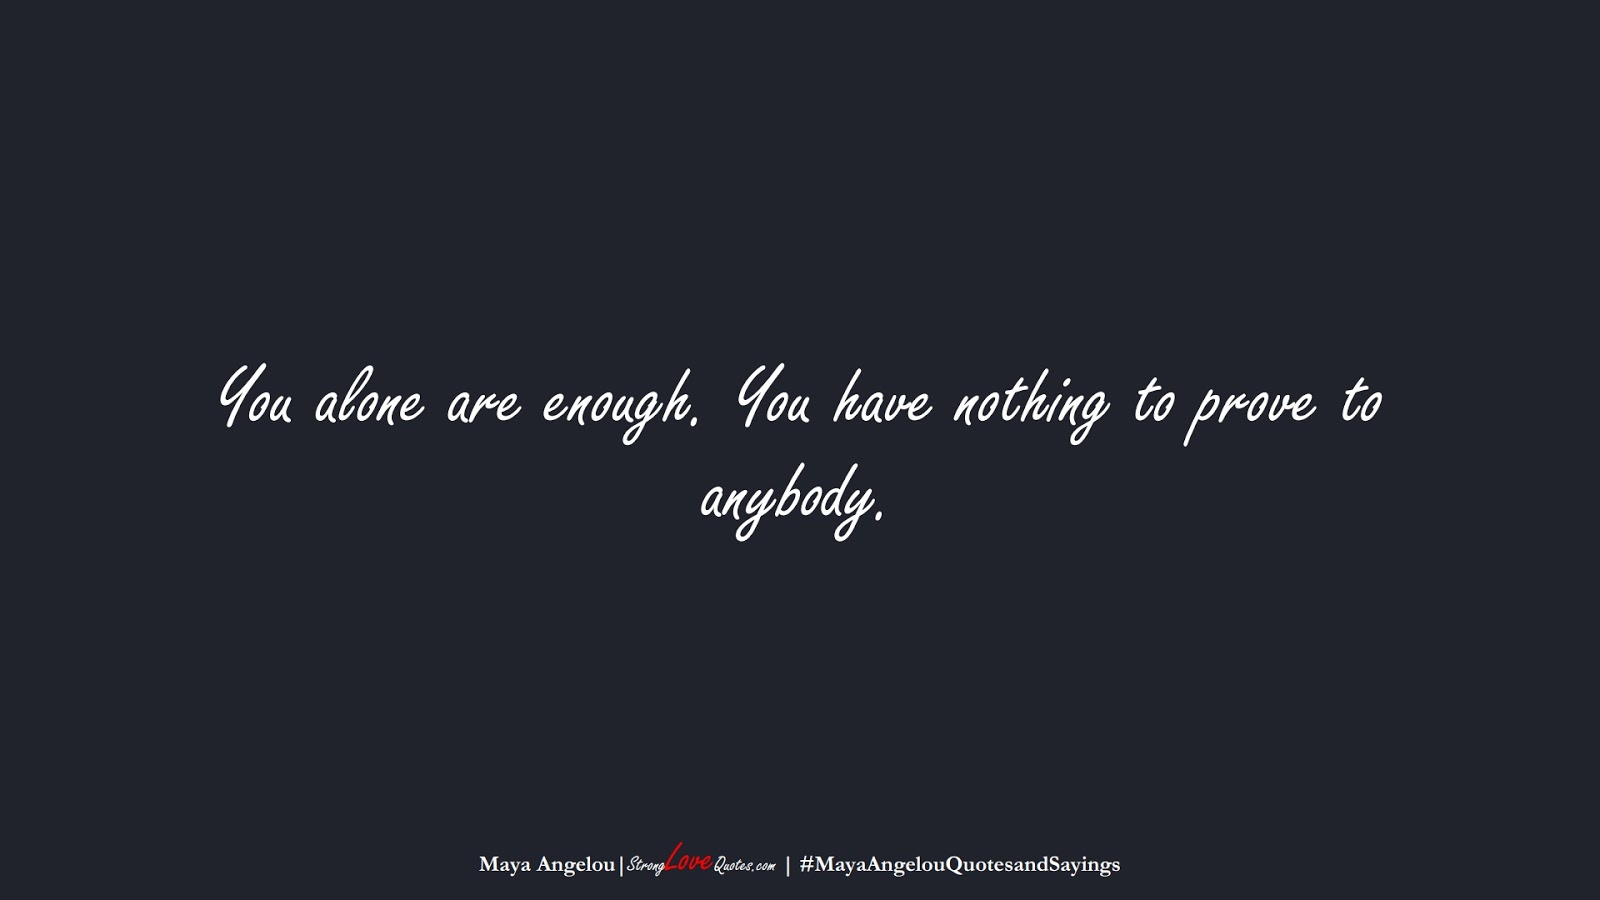 You alone are enough. You have nothing to prove to anybody. (Maya Angelou);  #MayaAngelouQuotesandSayings